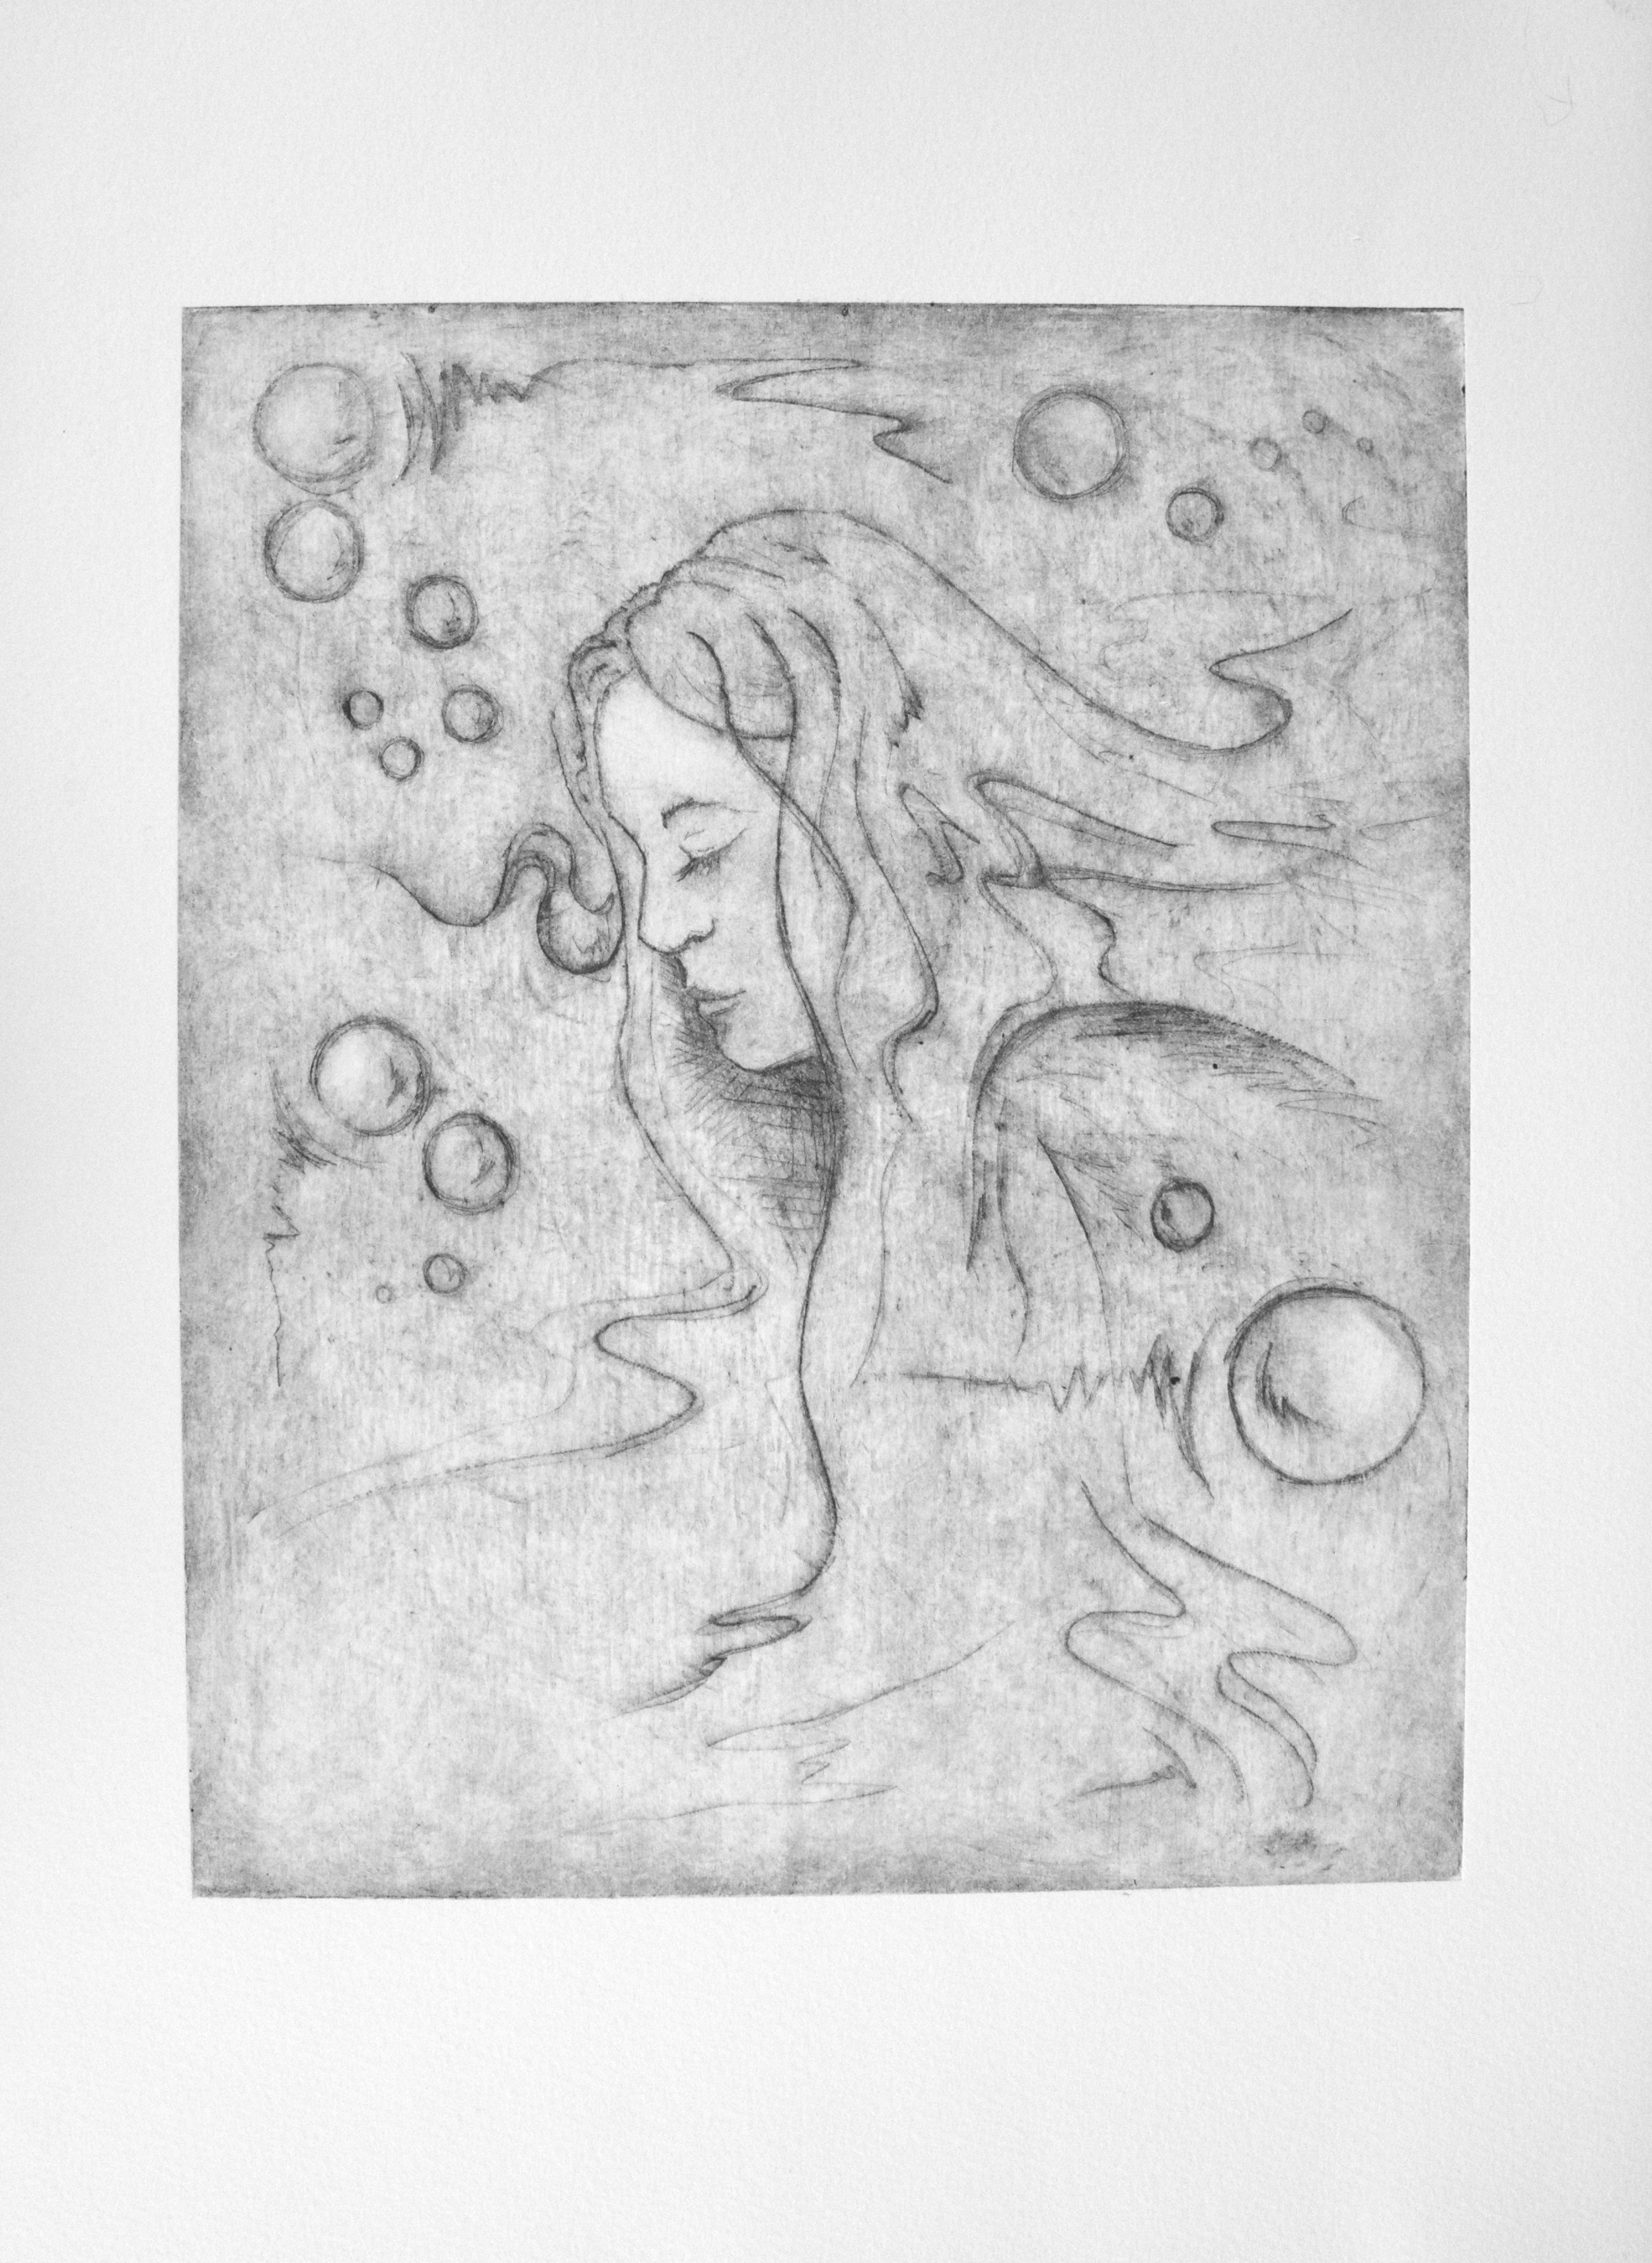 Misty Lady_11x15_Etching on zinc plate.jpeg